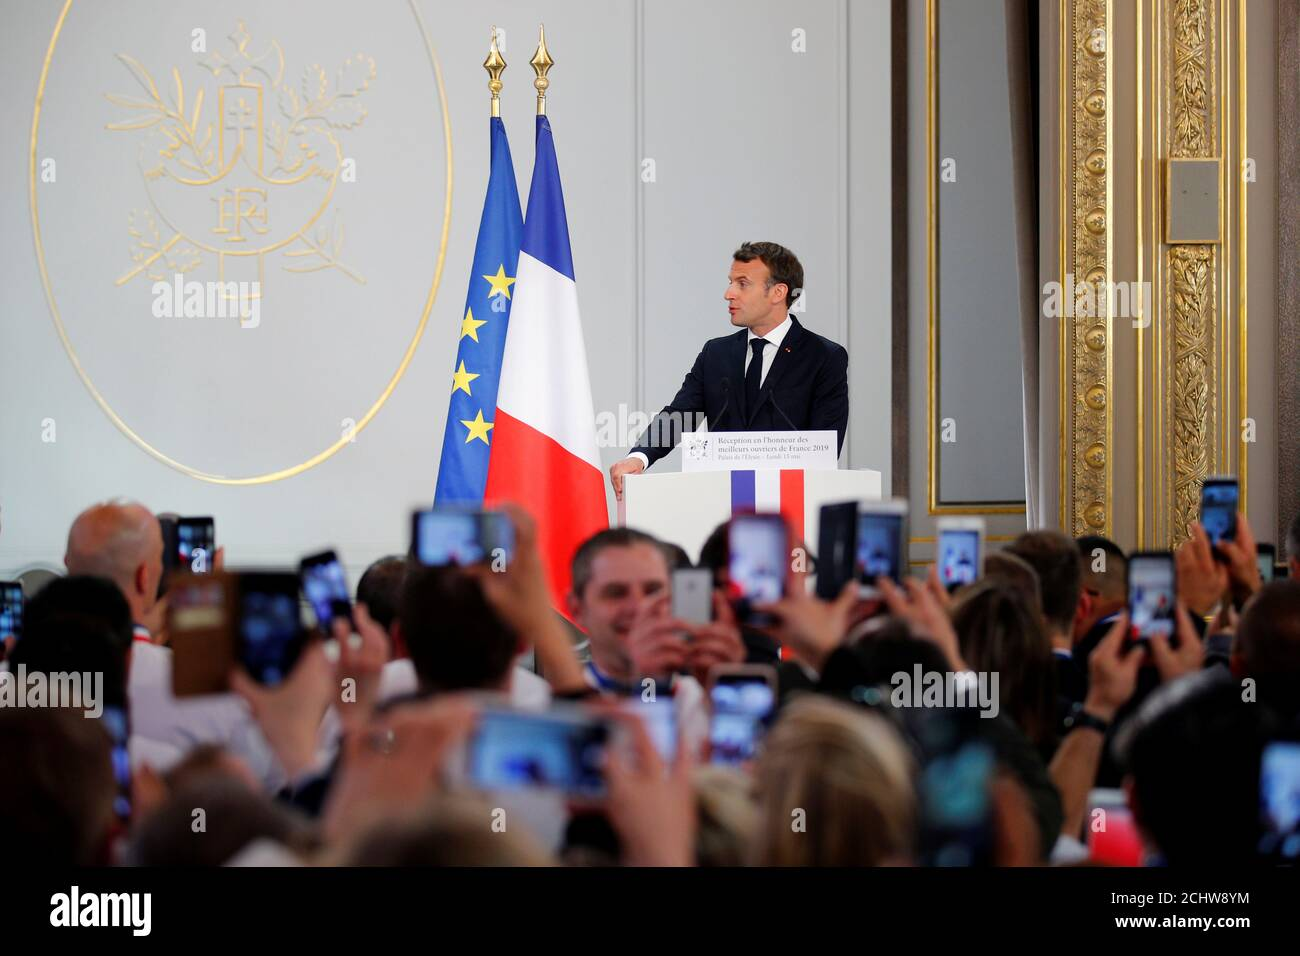 French President Emmanuel Macron Delivers A Speech At A Ceremony For The Prize Of Meilleur Ouvrier